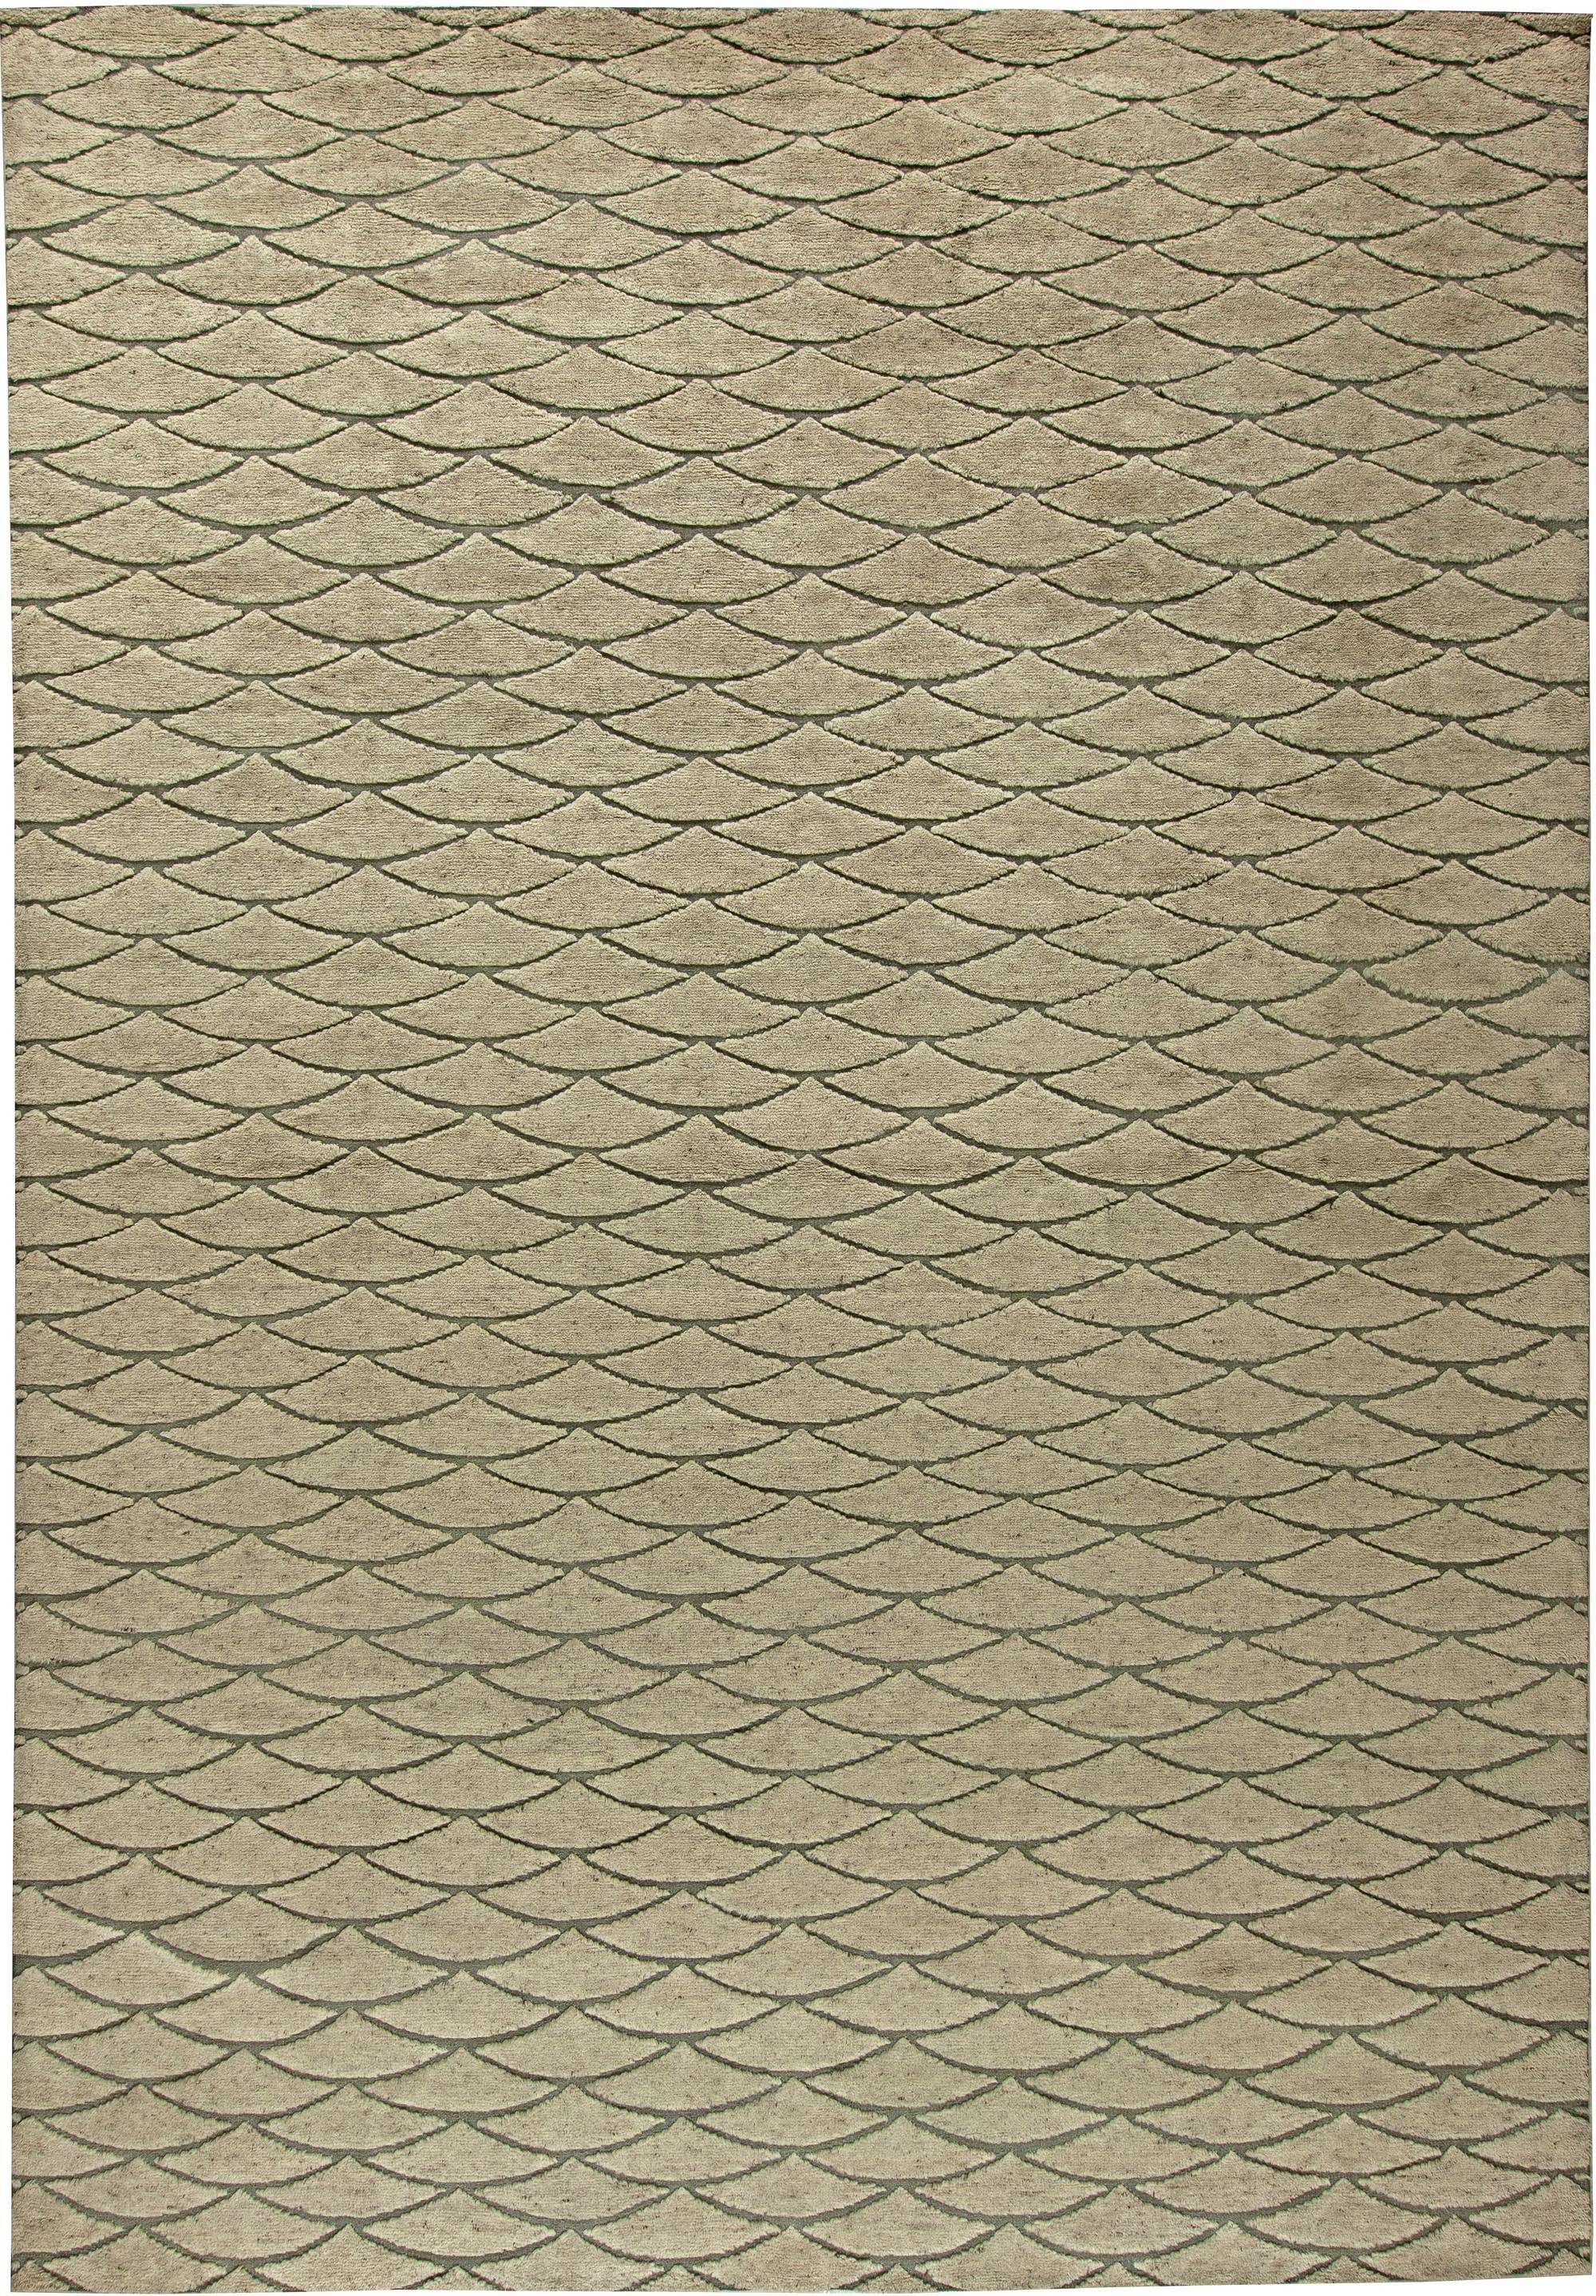 Moroccan Geometric Beige and Brown Hand Knotted Wool Rug N11118